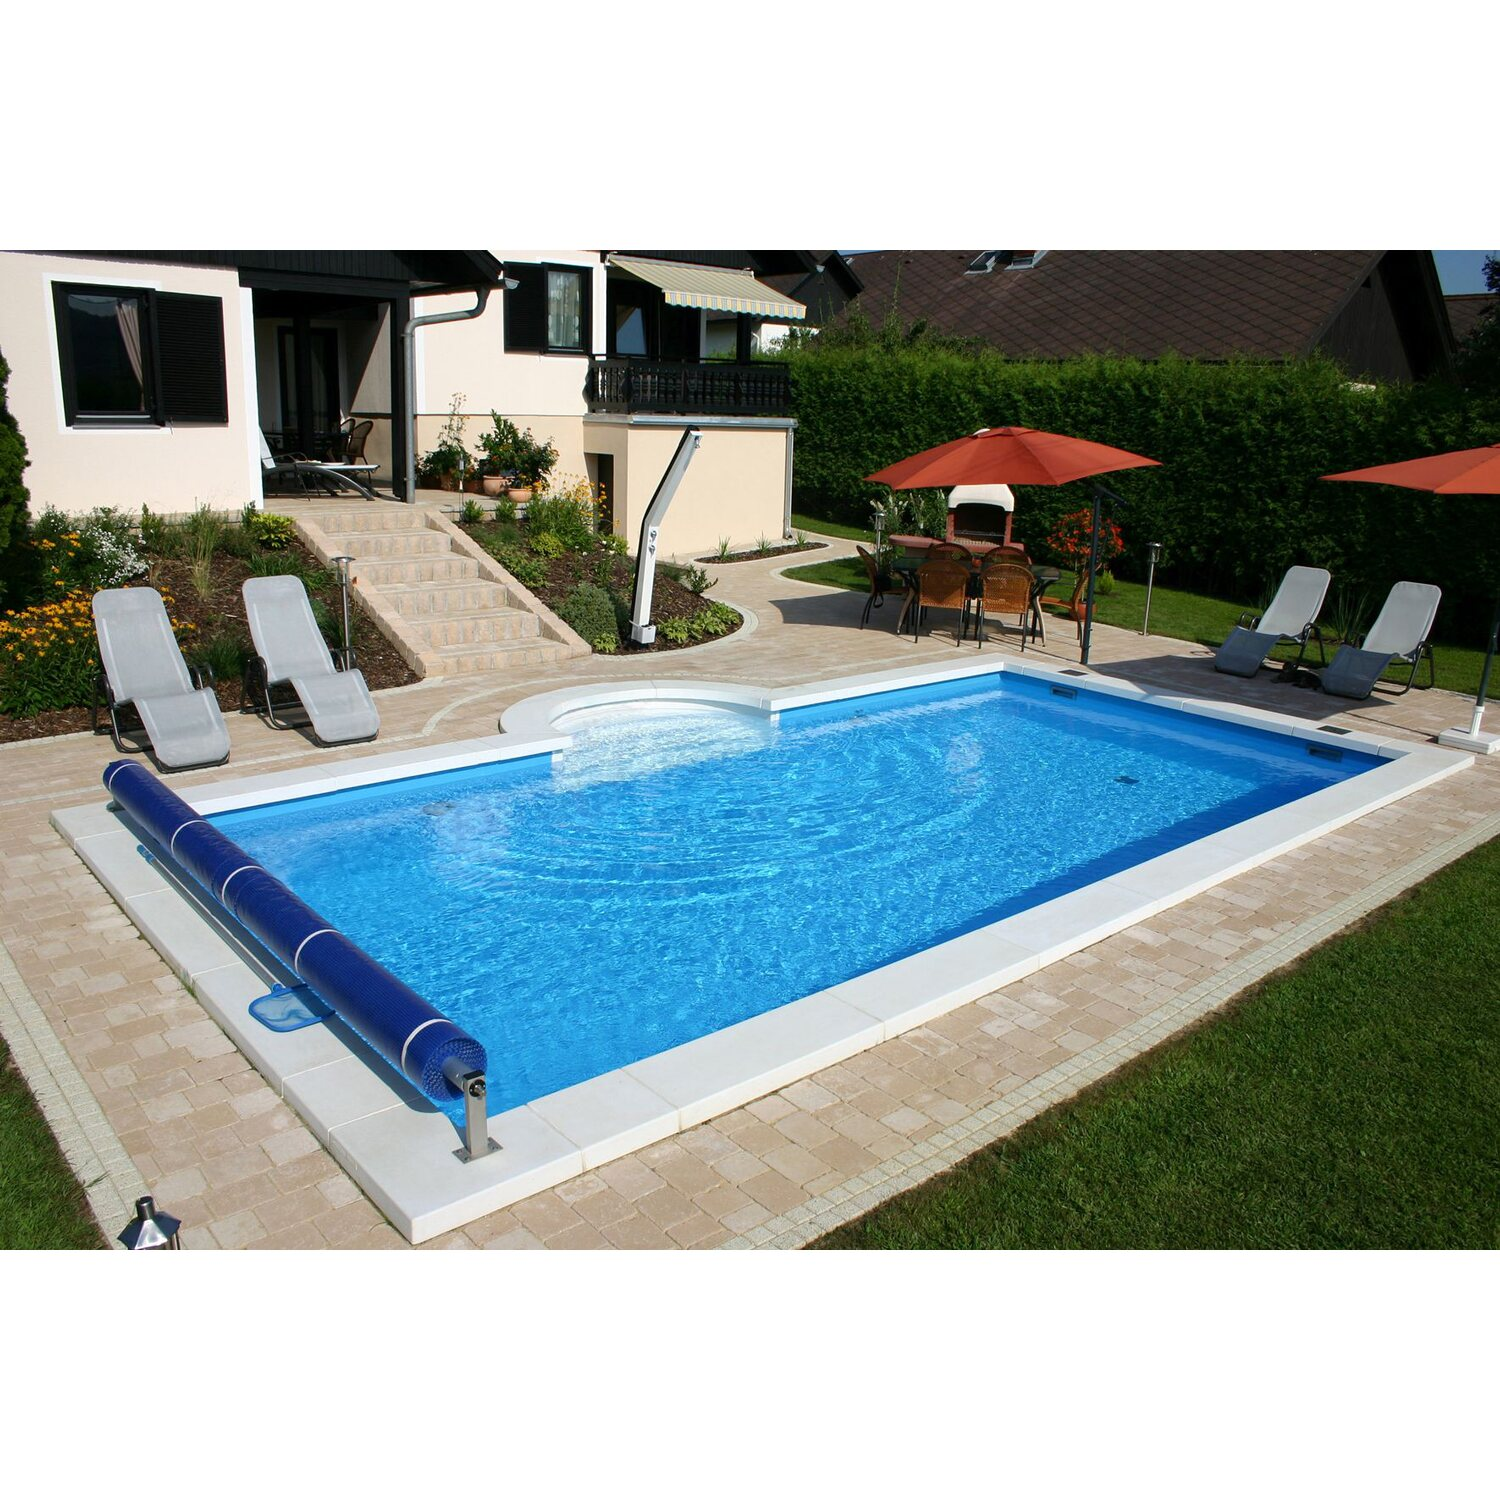 Summer fun styropor pool set lugano einbaubecken 700 cm x for Obi pool set